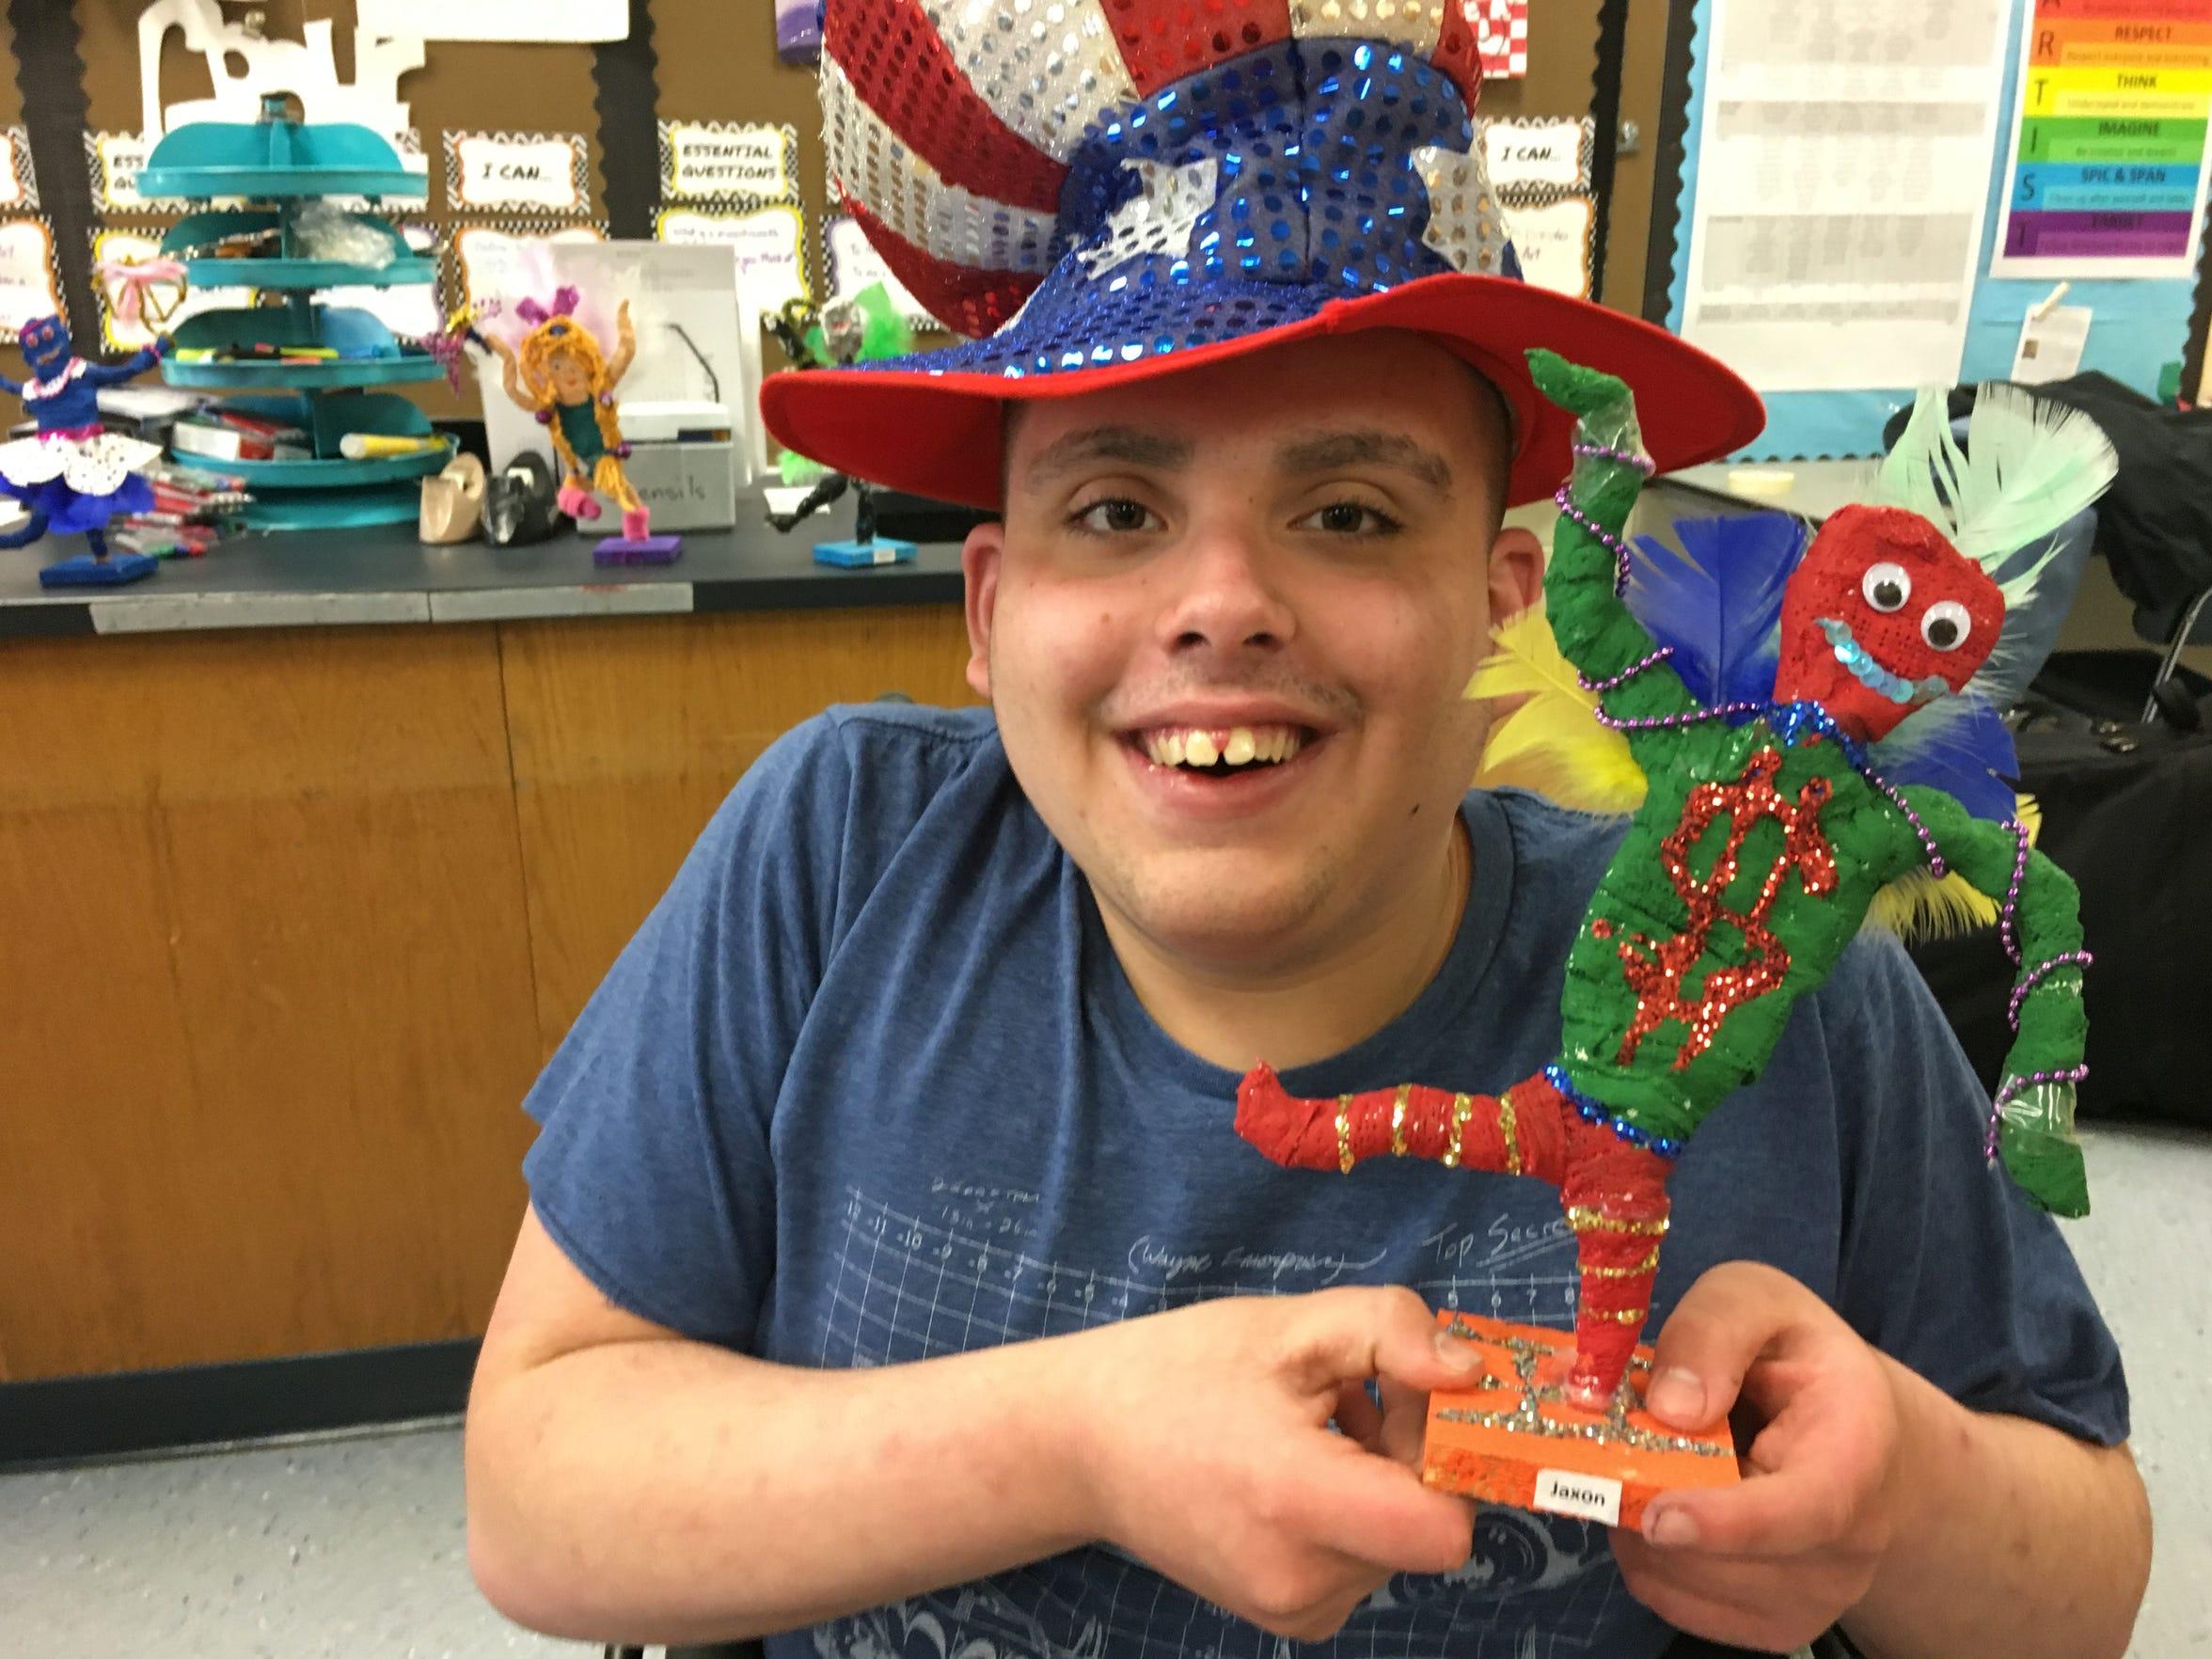 Burlington County Special Services School sophomore Jaxon Keefer, 15 - the student council president - wears a Philadelphia Mummer's costume hat while showing the Mummers-inspired figure he created in art class.